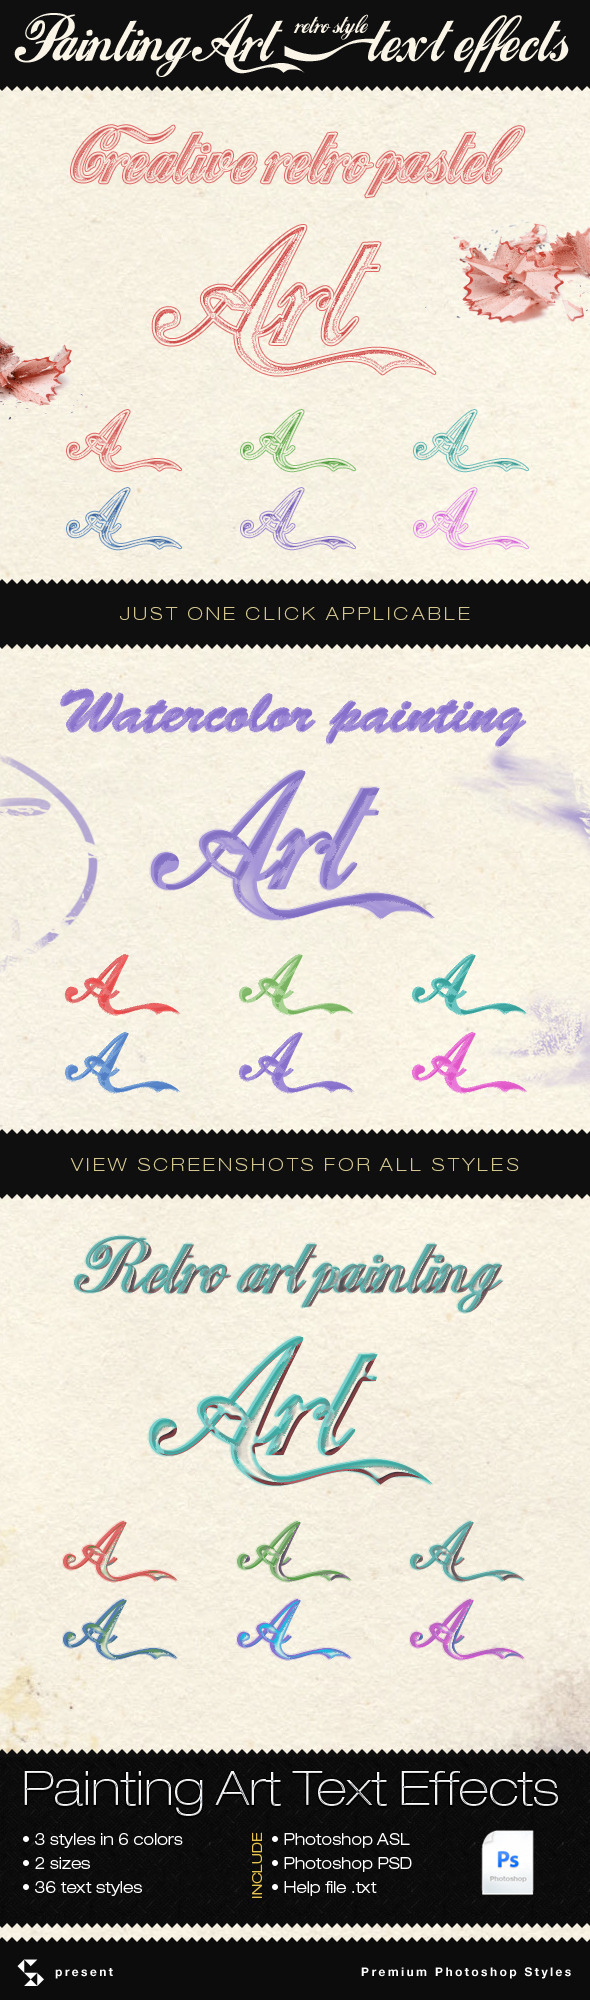 Painting and Retro Art Text Effects